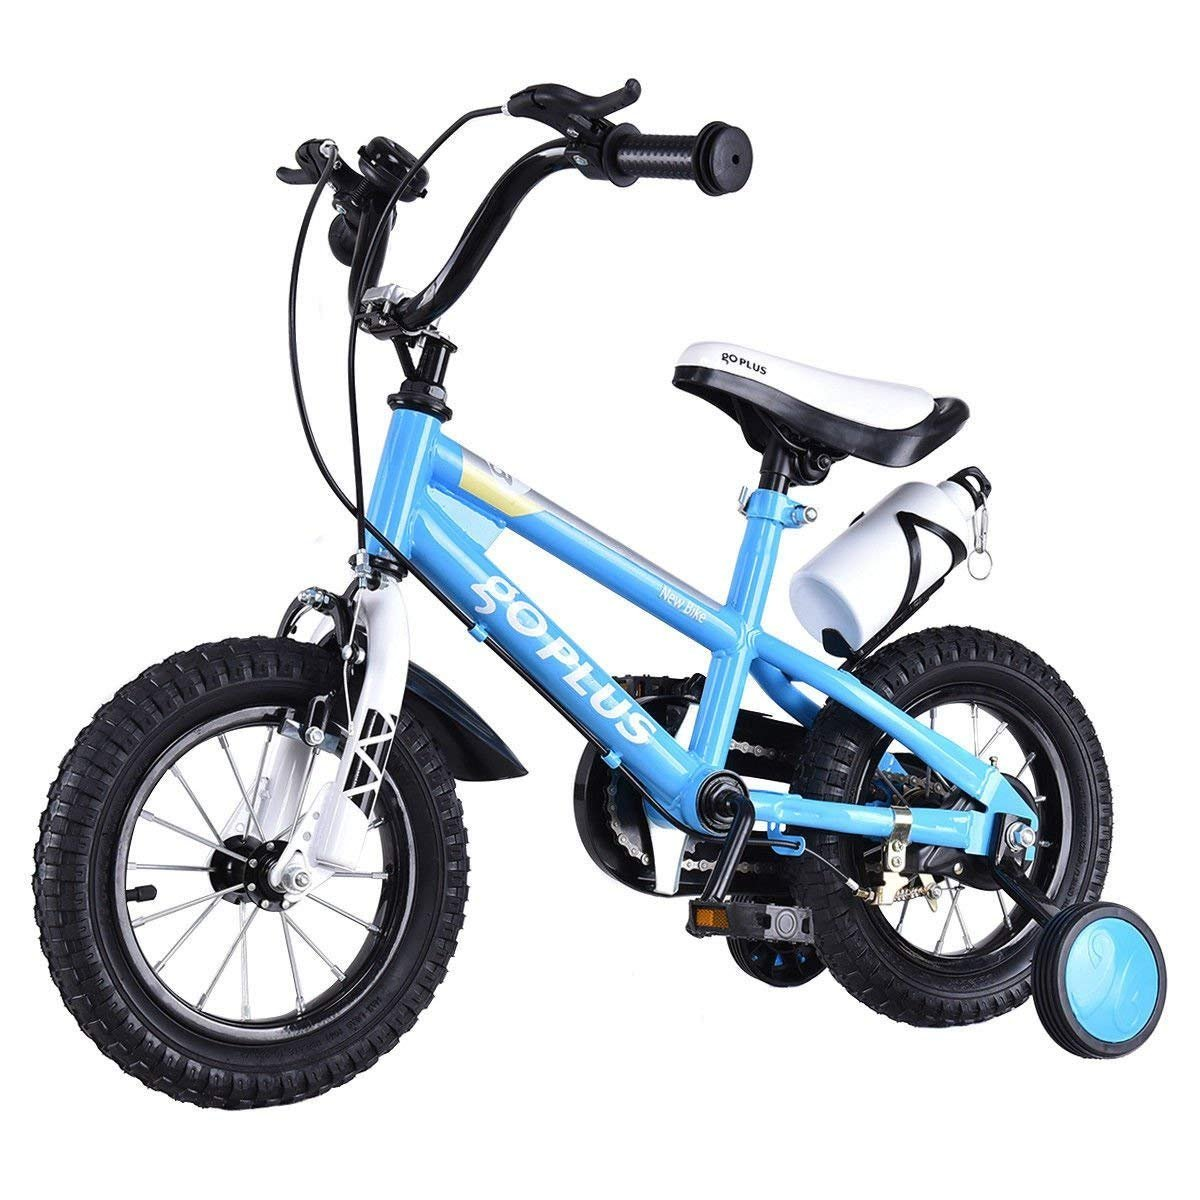 Goplus Freestyle Kids Bike Bicycle 12inch/ 16inch/ 20inch Balance Bike with Training Wheels for Boy's and Girl's (Blue, 12-inch)